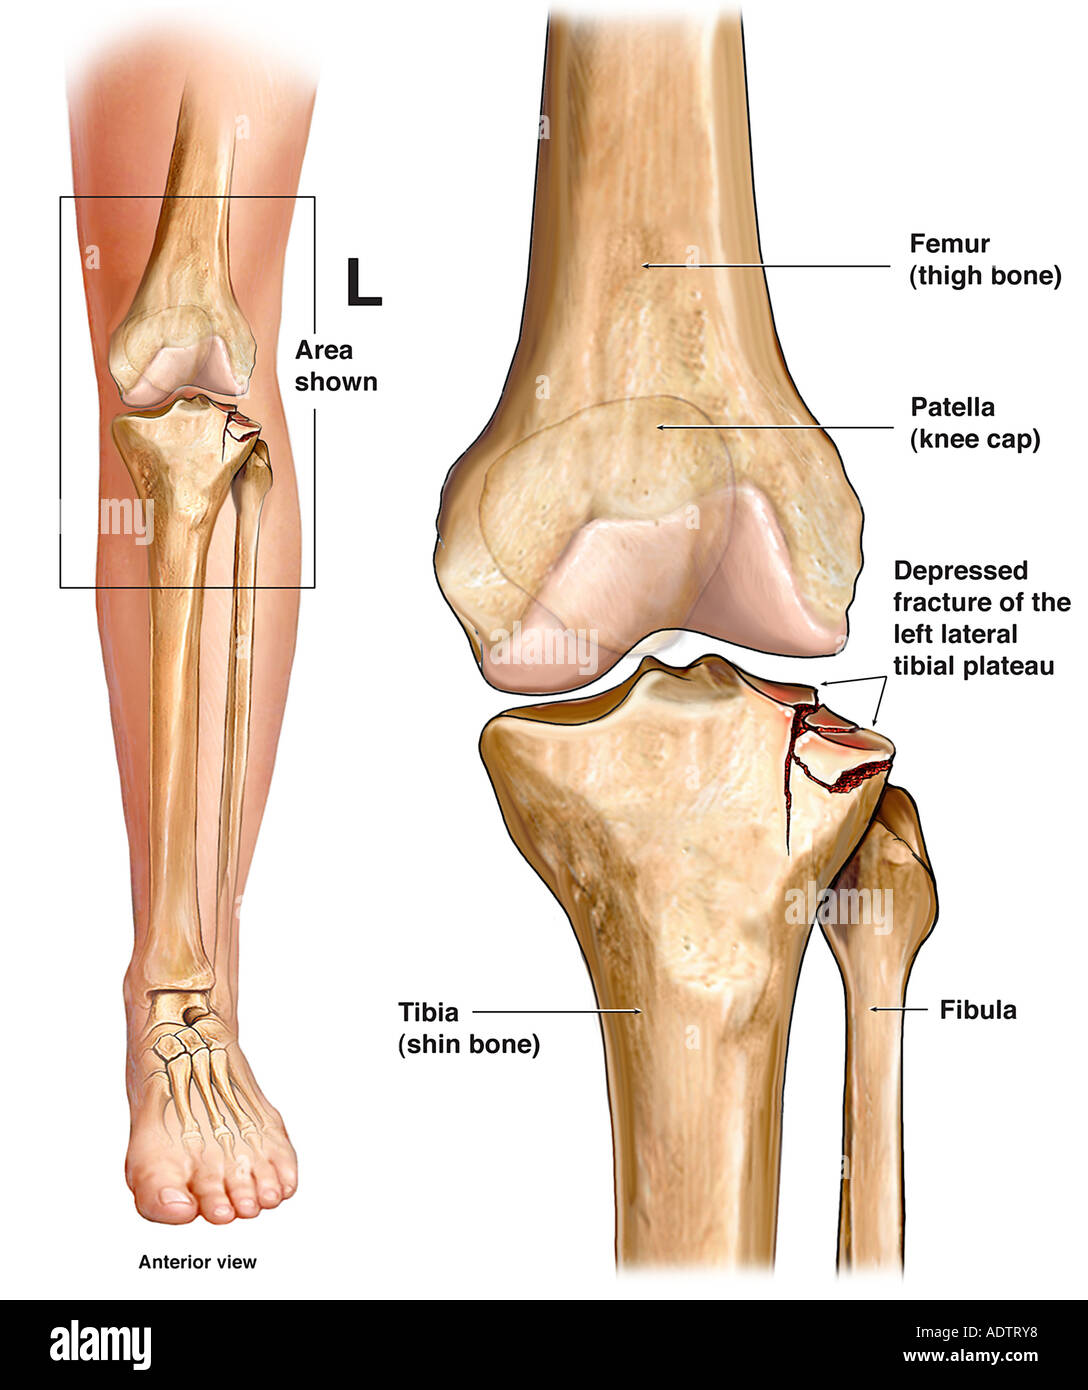 Left Knee Tibial Plateau Fracture Stock Photo: 7710199 - Alamy